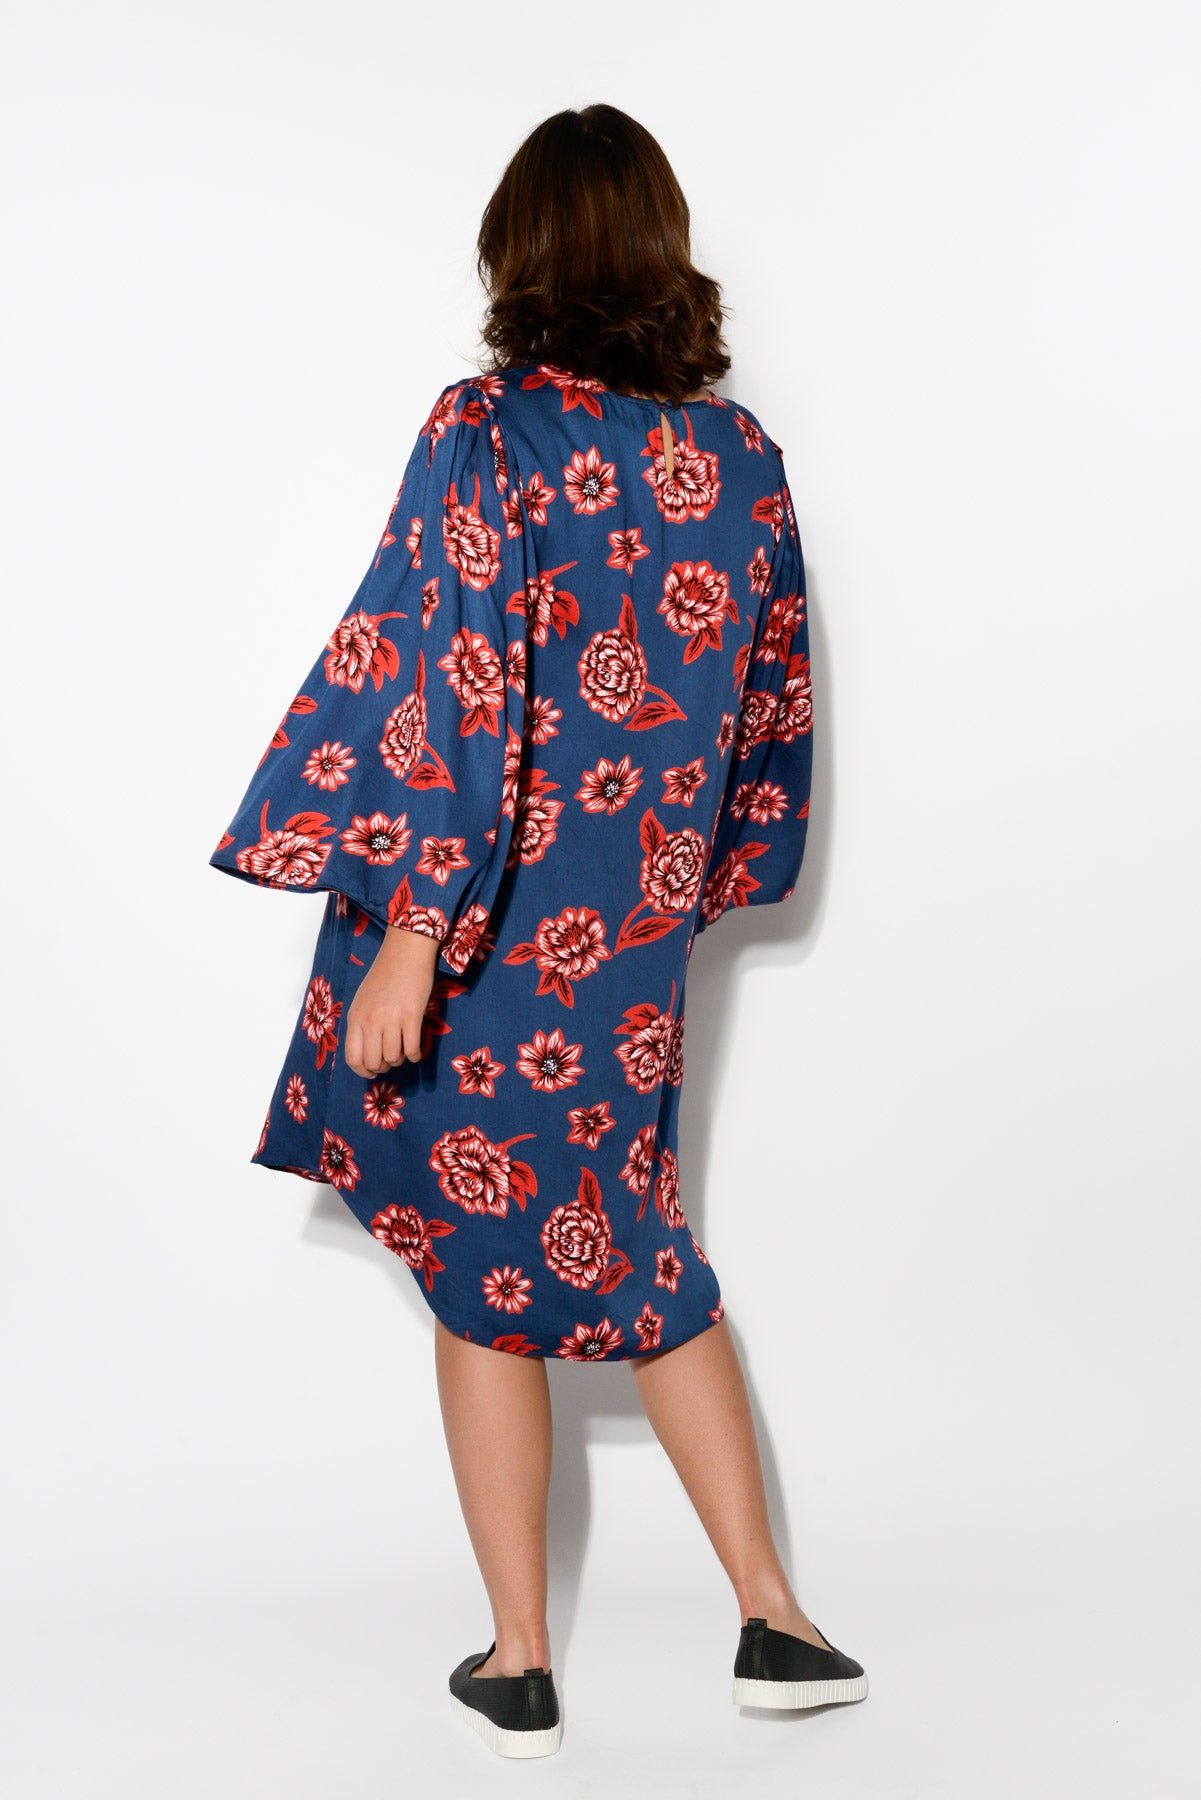 Navy Floral Bell Sleeve Dress - Blue Bungalow